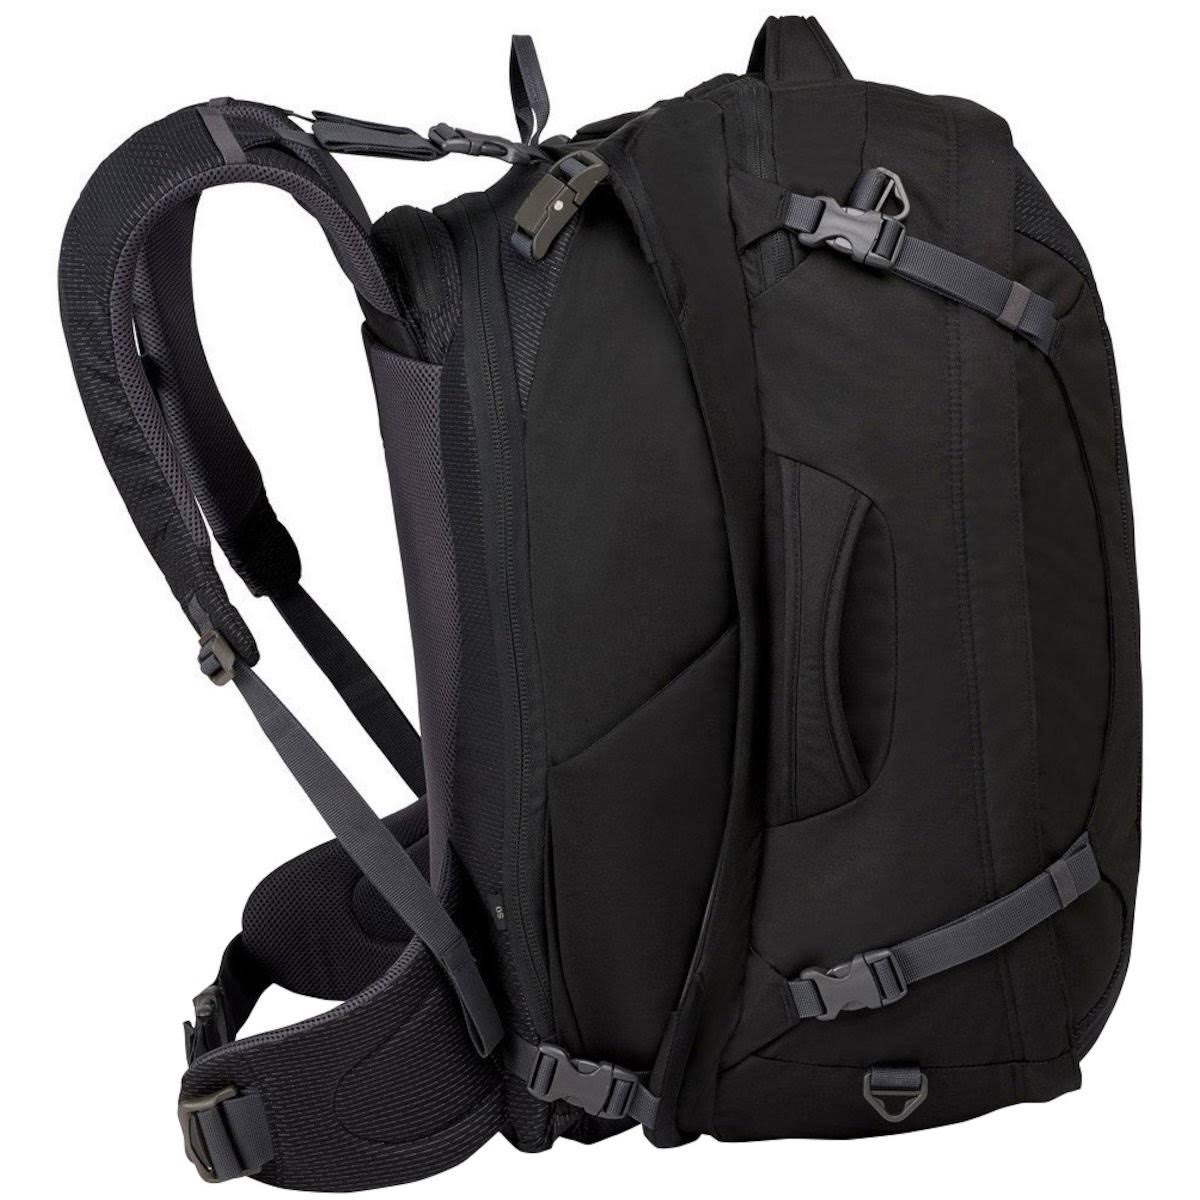 Osprey - Ozone Duplex 65 Travel Pack - Black